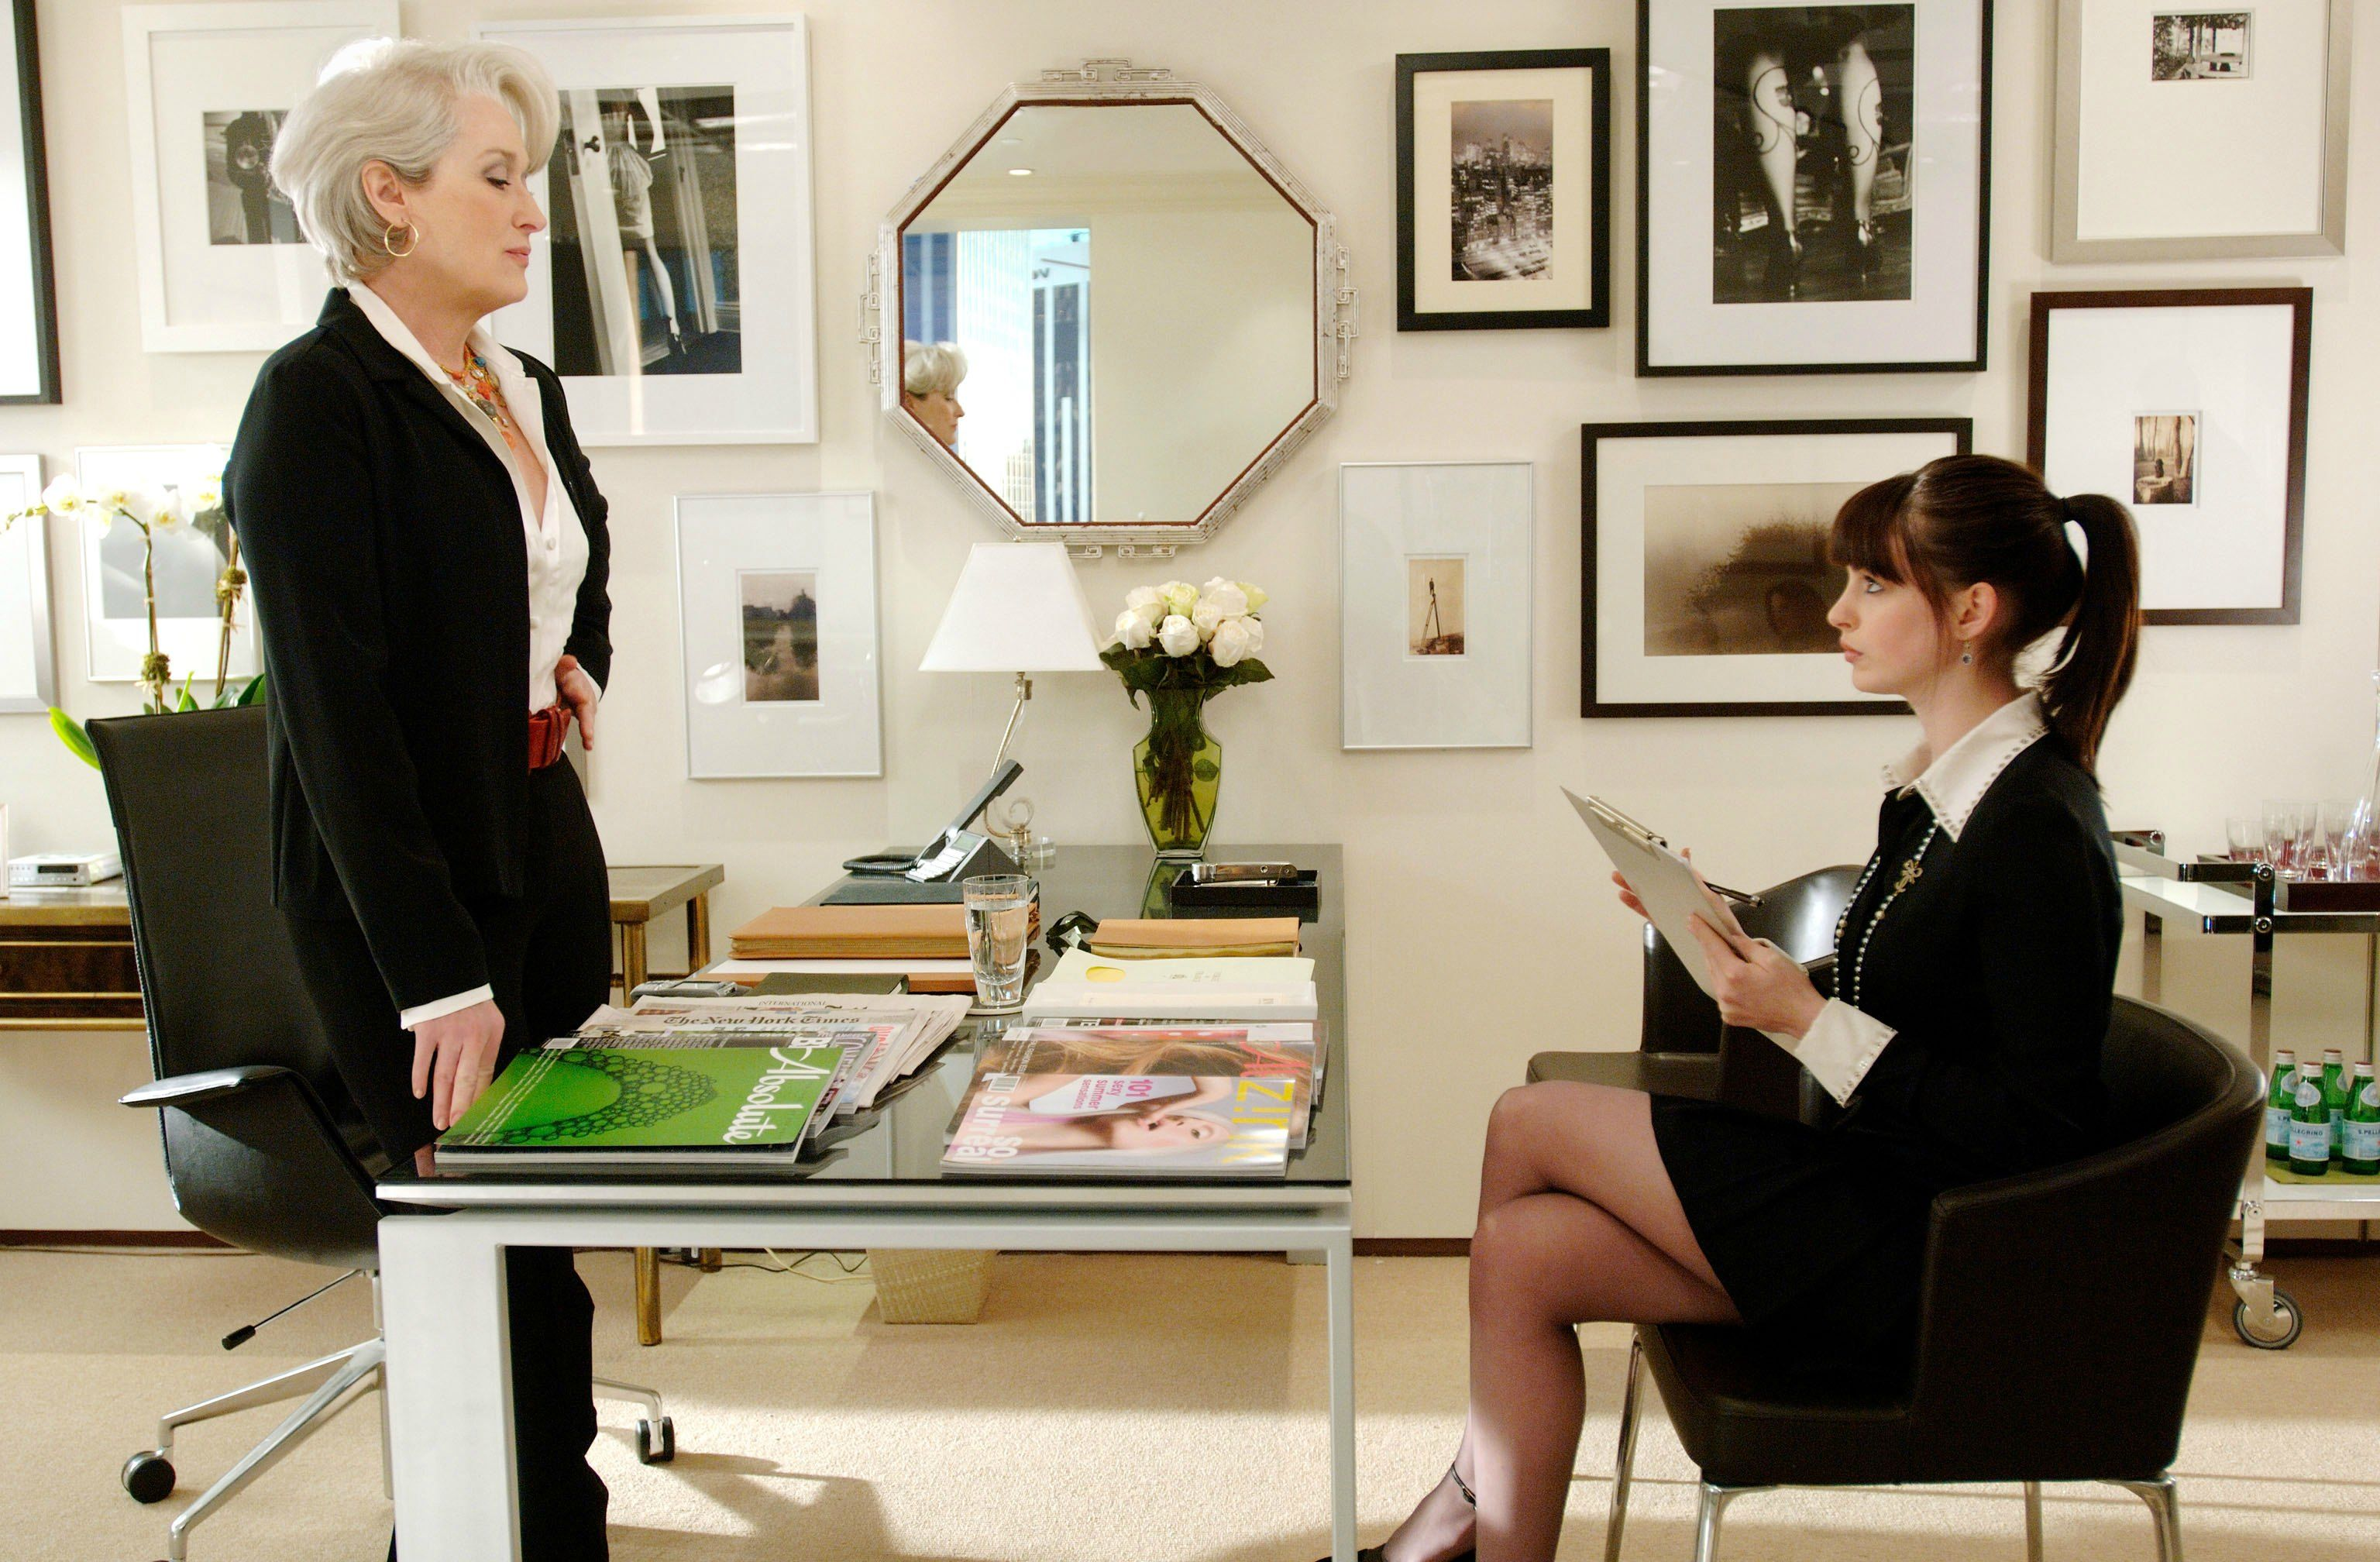 A Devil Wears Prada musical is coming next year